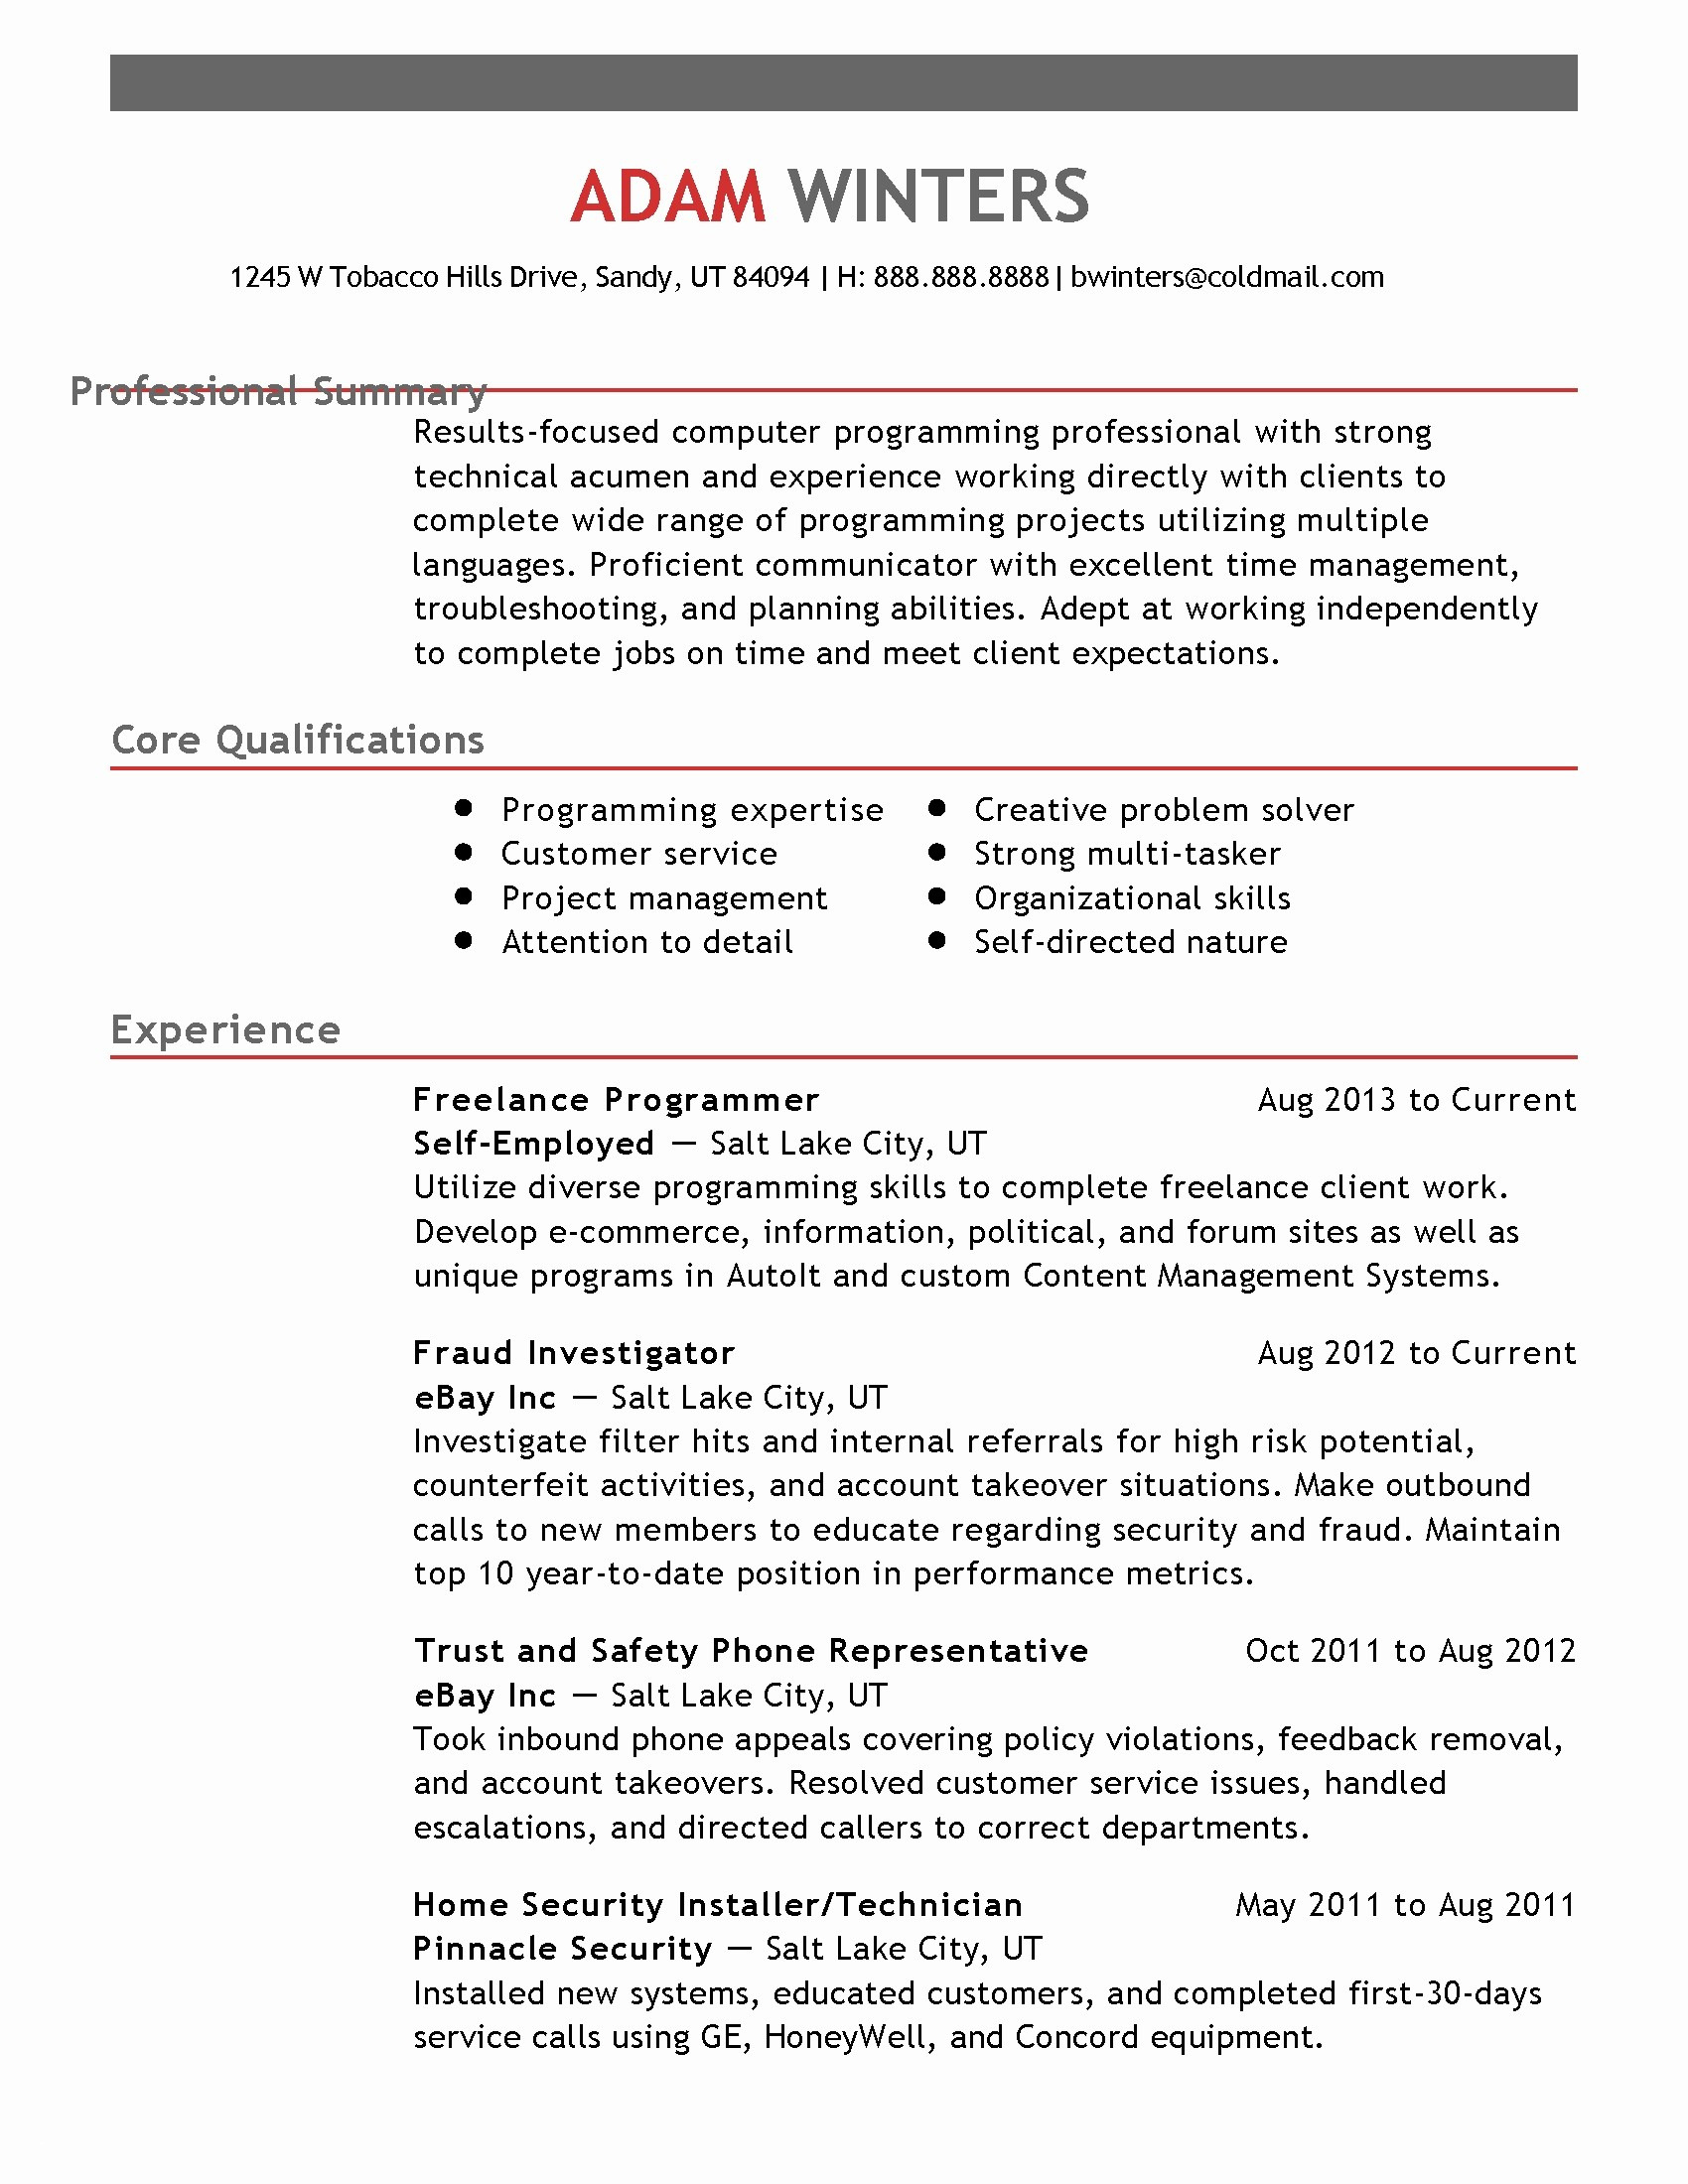 rfp cover letter template performance resume template unique detailed resume template luxury